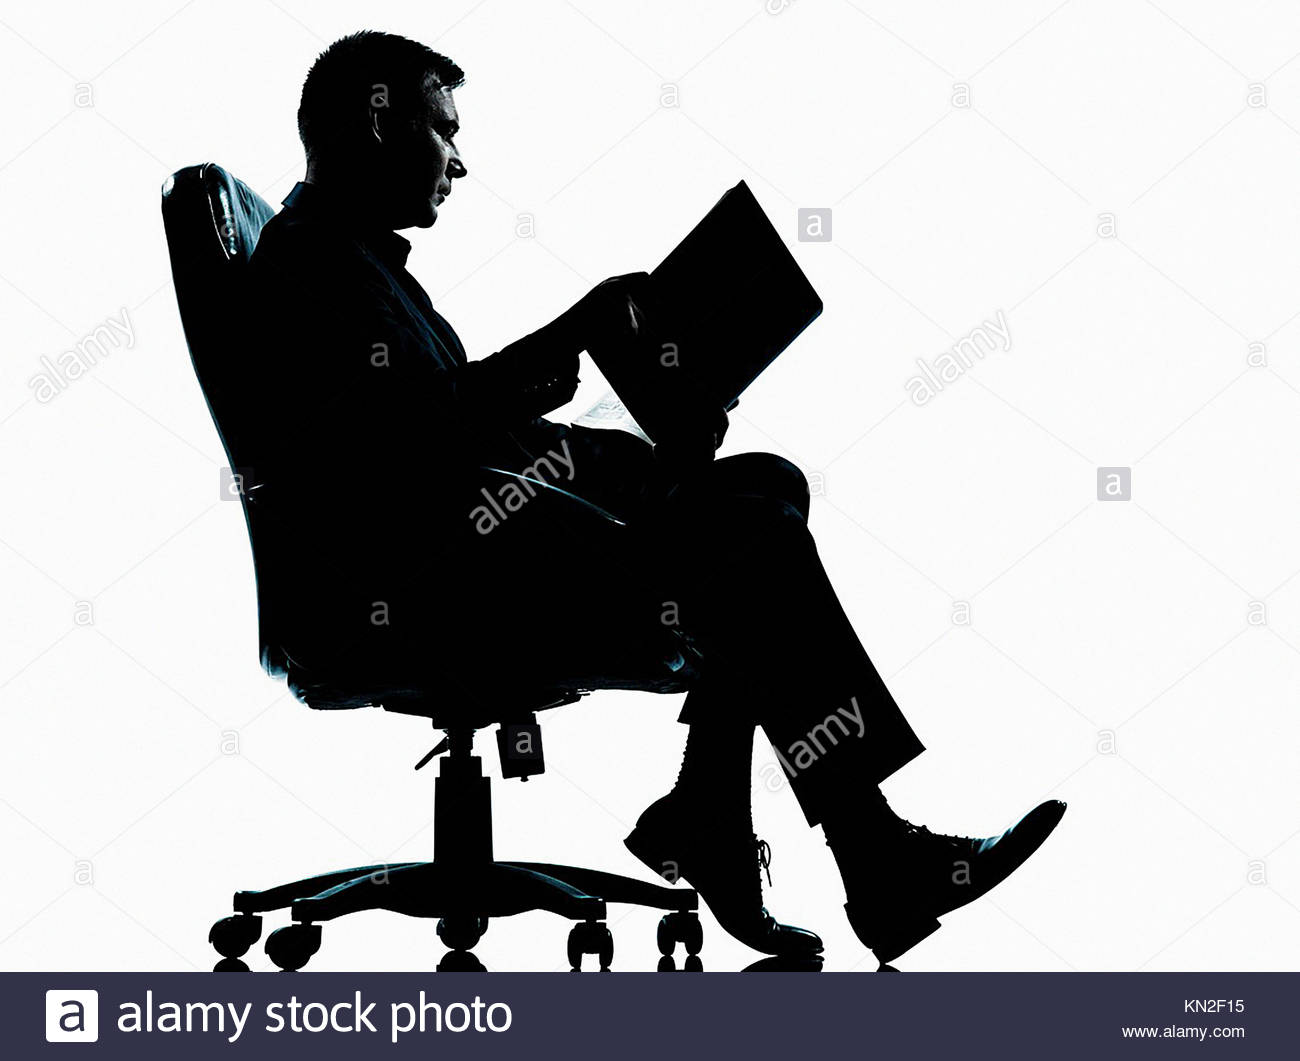 1300x1061 Man Sitting Silhouette Stock Photos Amp Man Sitting Silhouette Stock